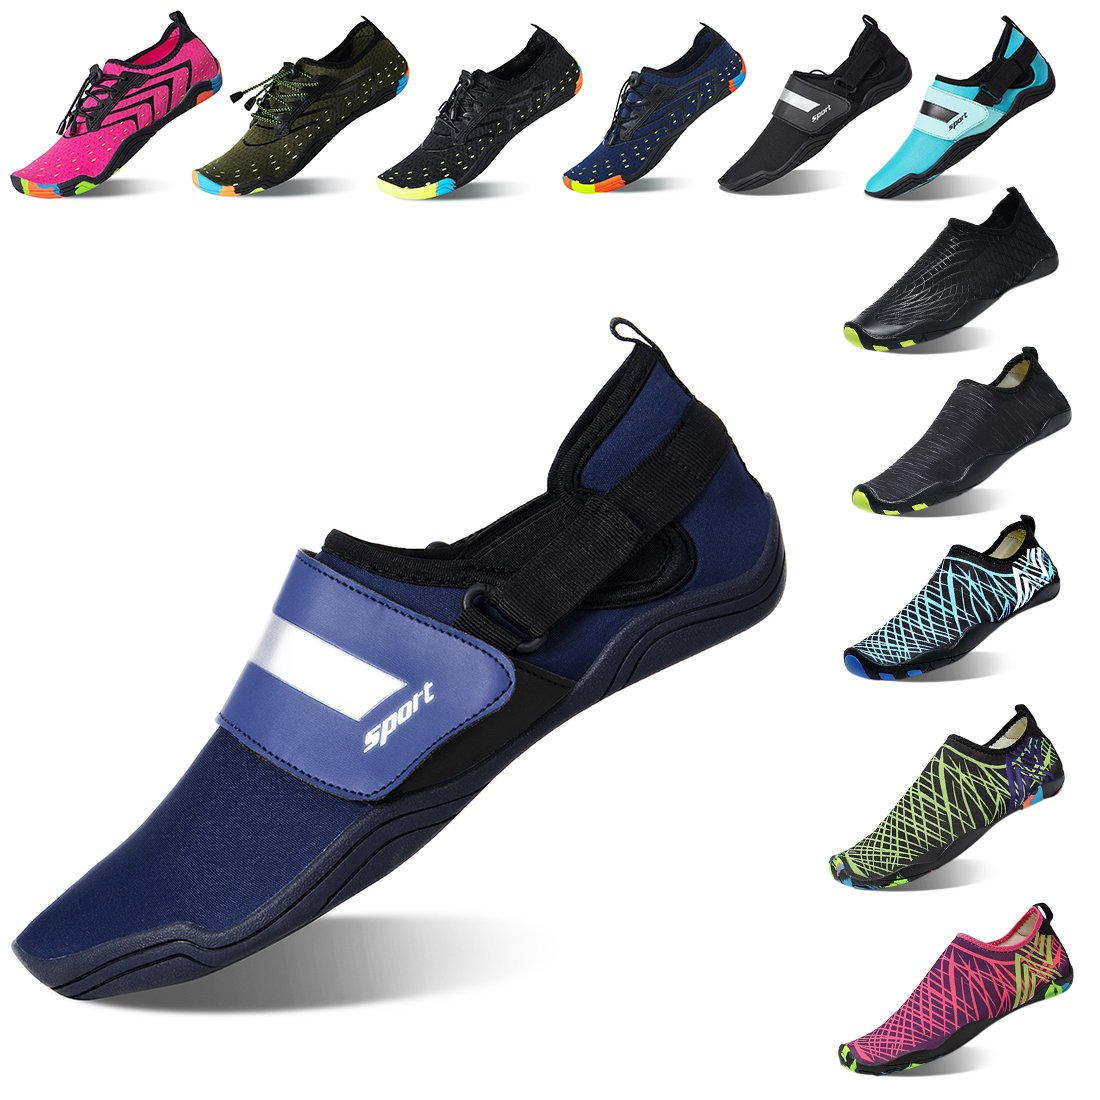 Lauwodun Womens and Mens Quick Dry Water Shoes Barefoot Aqua Sock Shoes for Beach Surfing Yoga Running Exercise-Blue-2-42